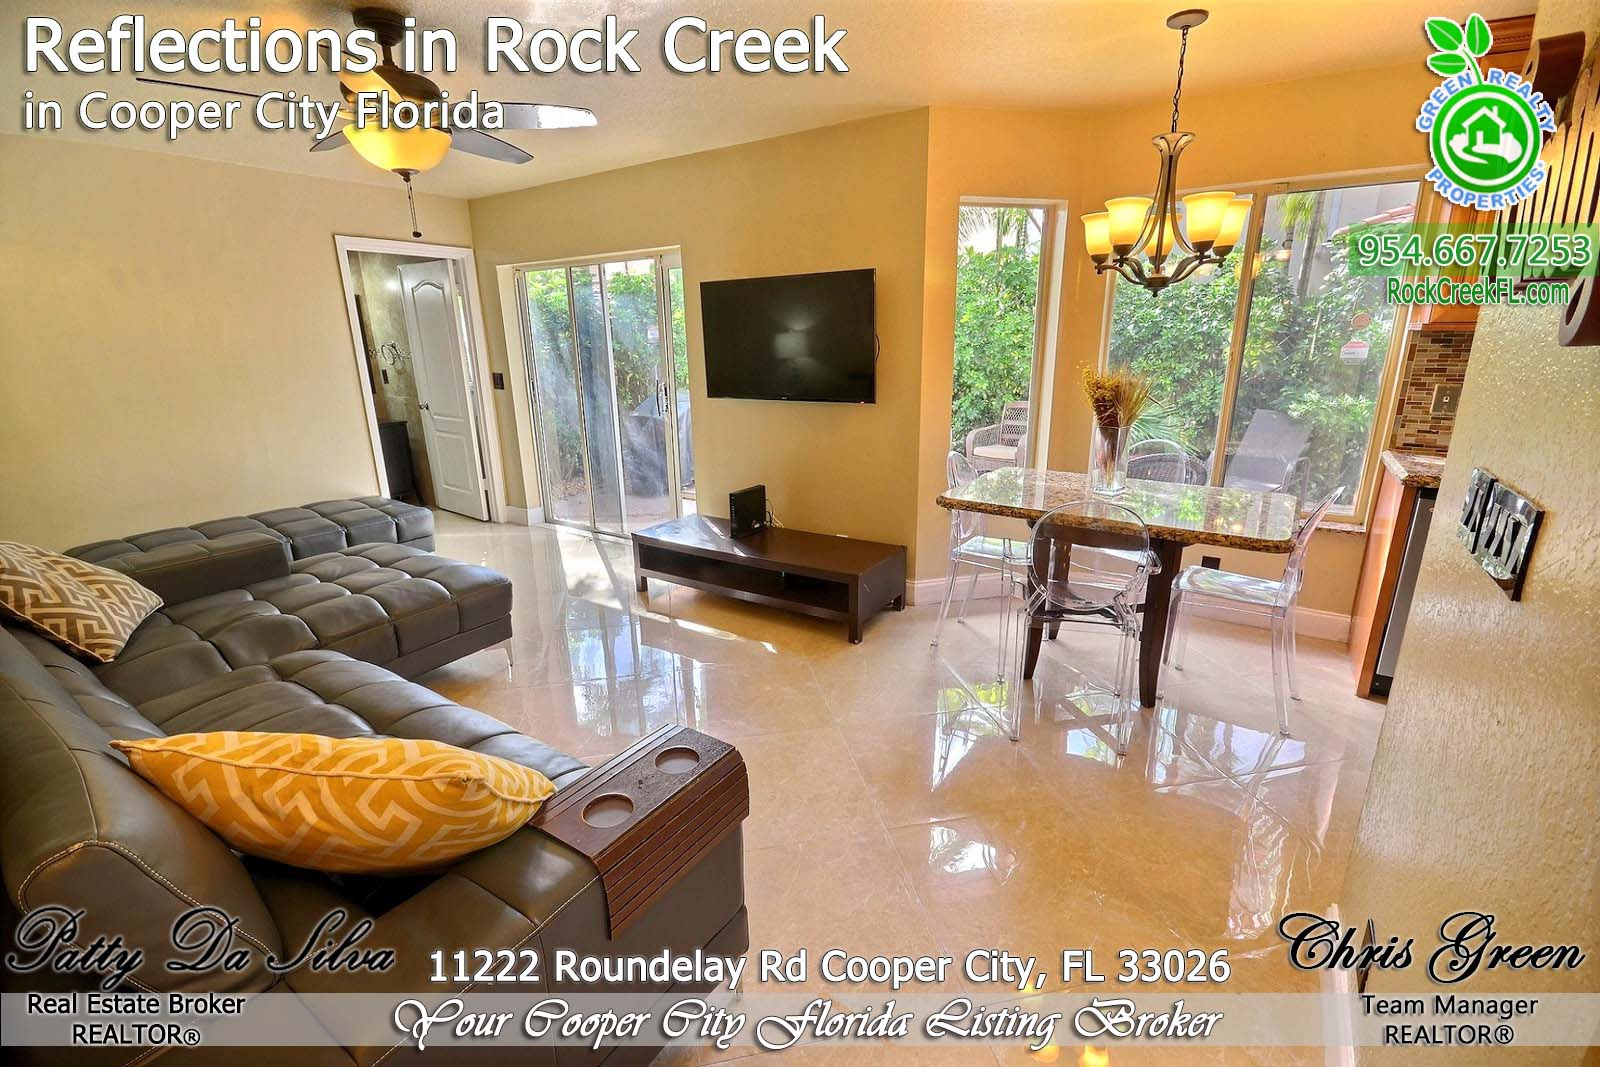 Reflections Rock Creek Realtors